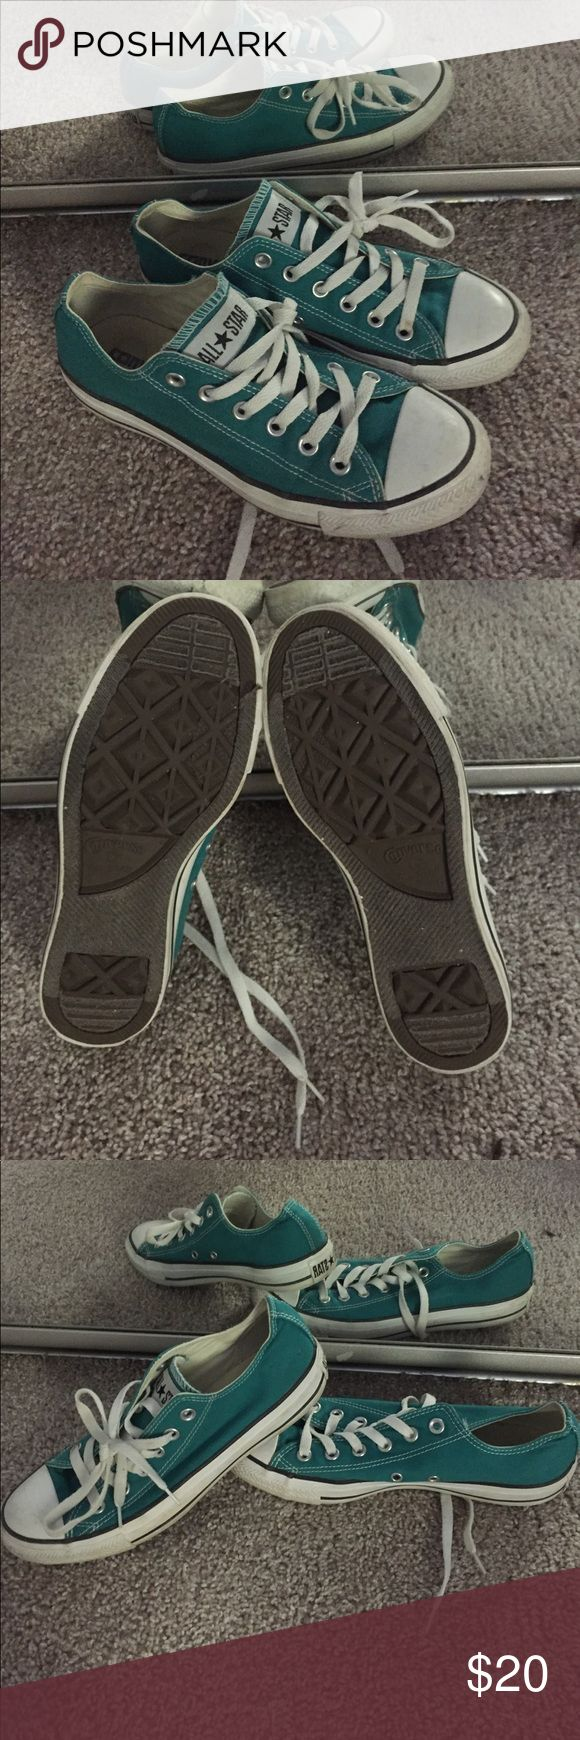 Women's turquoise Converse Converse All Star in turquoise. Great shoes that last forever. Converse Shoes Sneakers